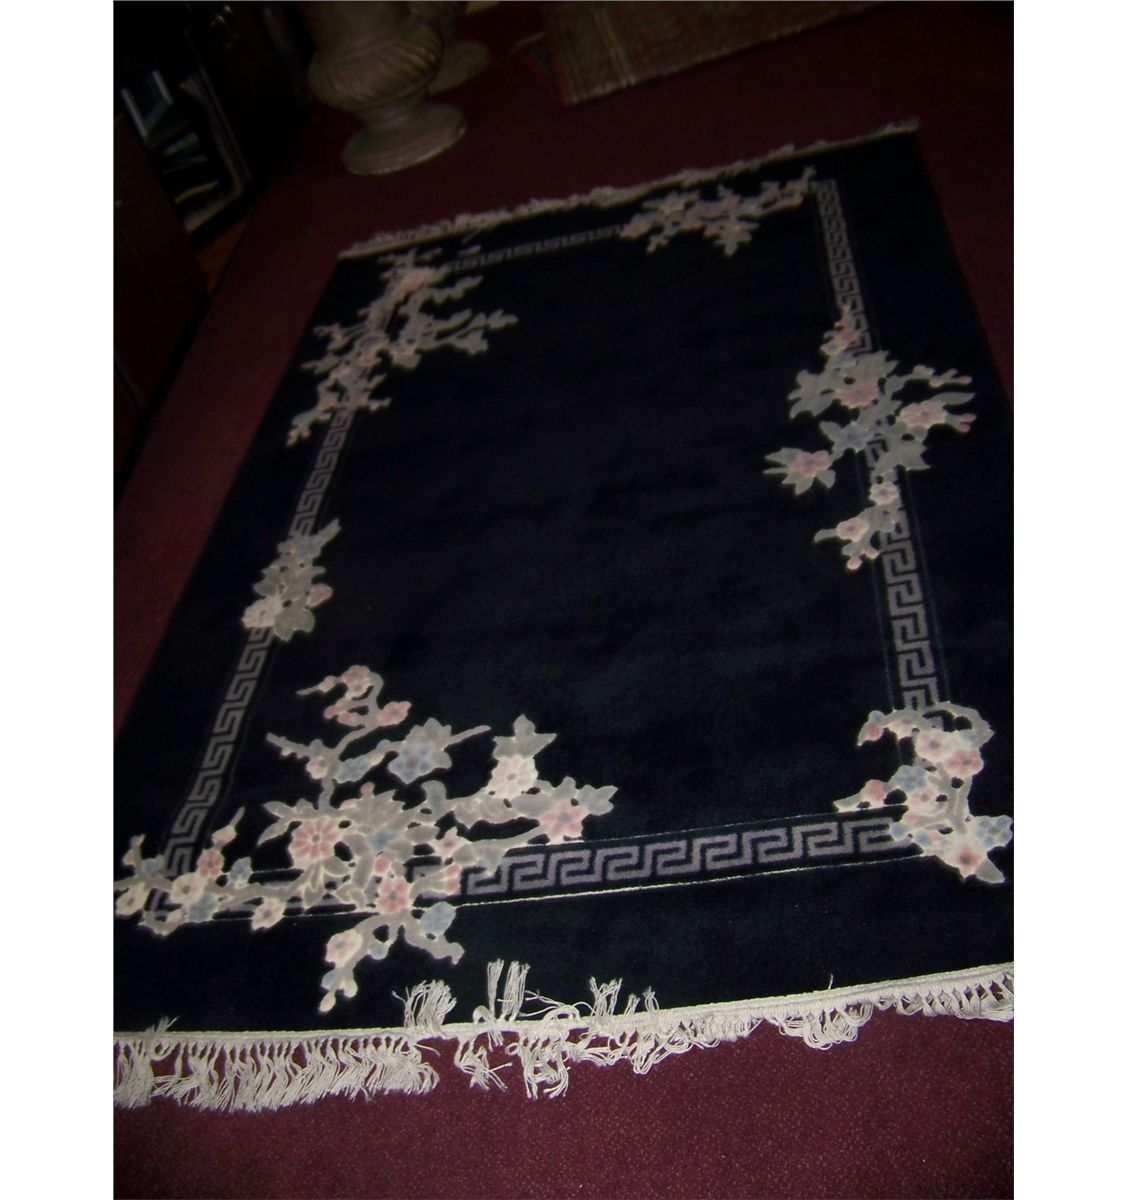 Stylish Black White Woven Large Area Rug With Floral